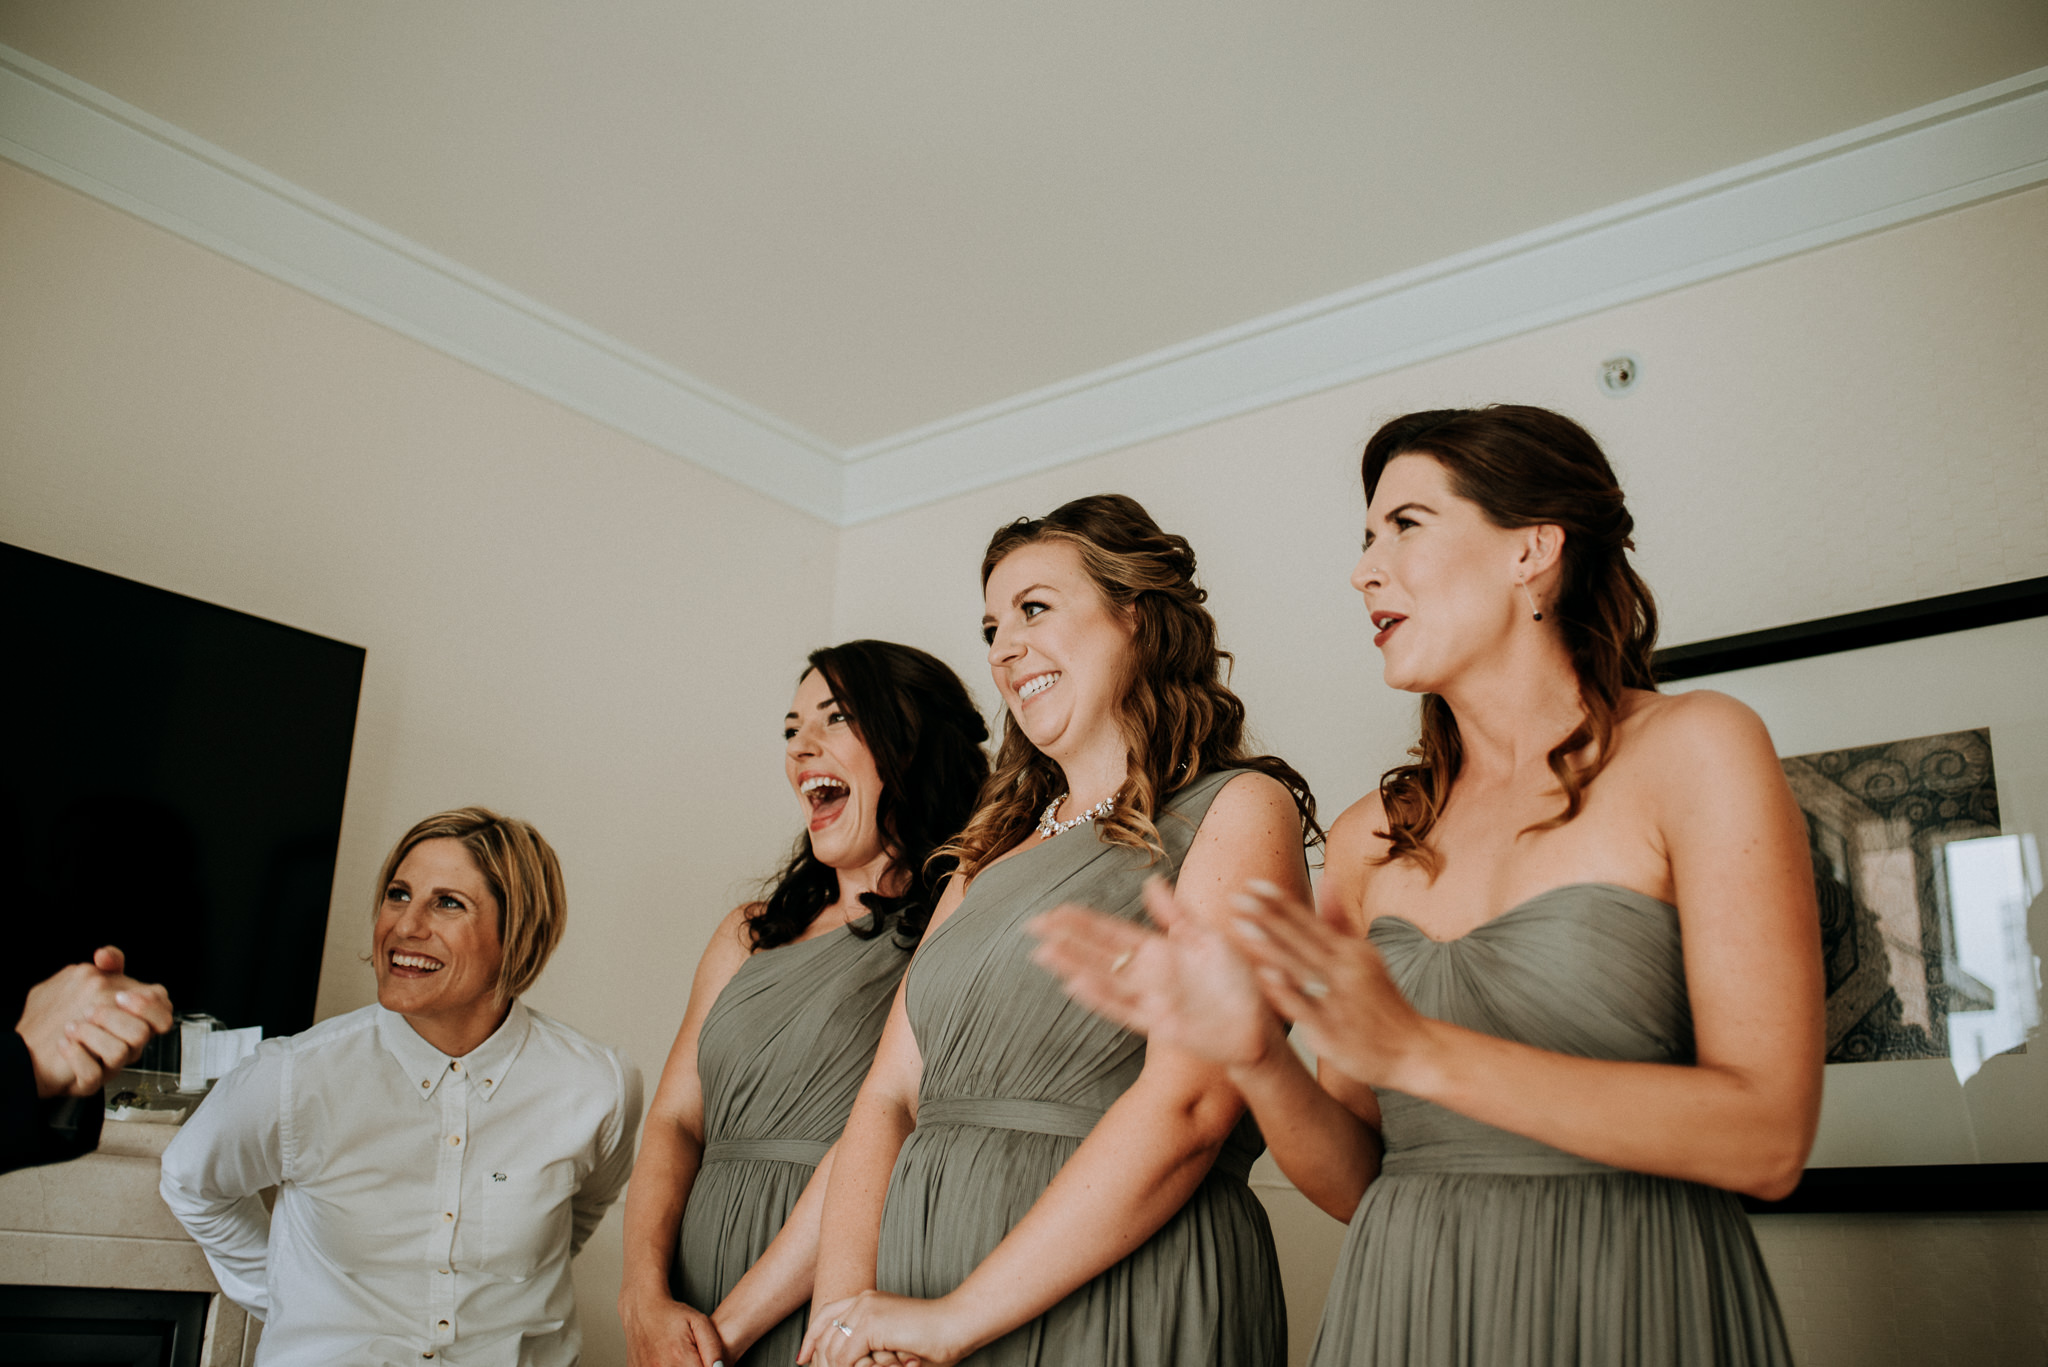 23-vintage-vancouver-gastown-same-sex-wedding-the-permanent-ellesarah-sara-rogers-photography-7124.jpg